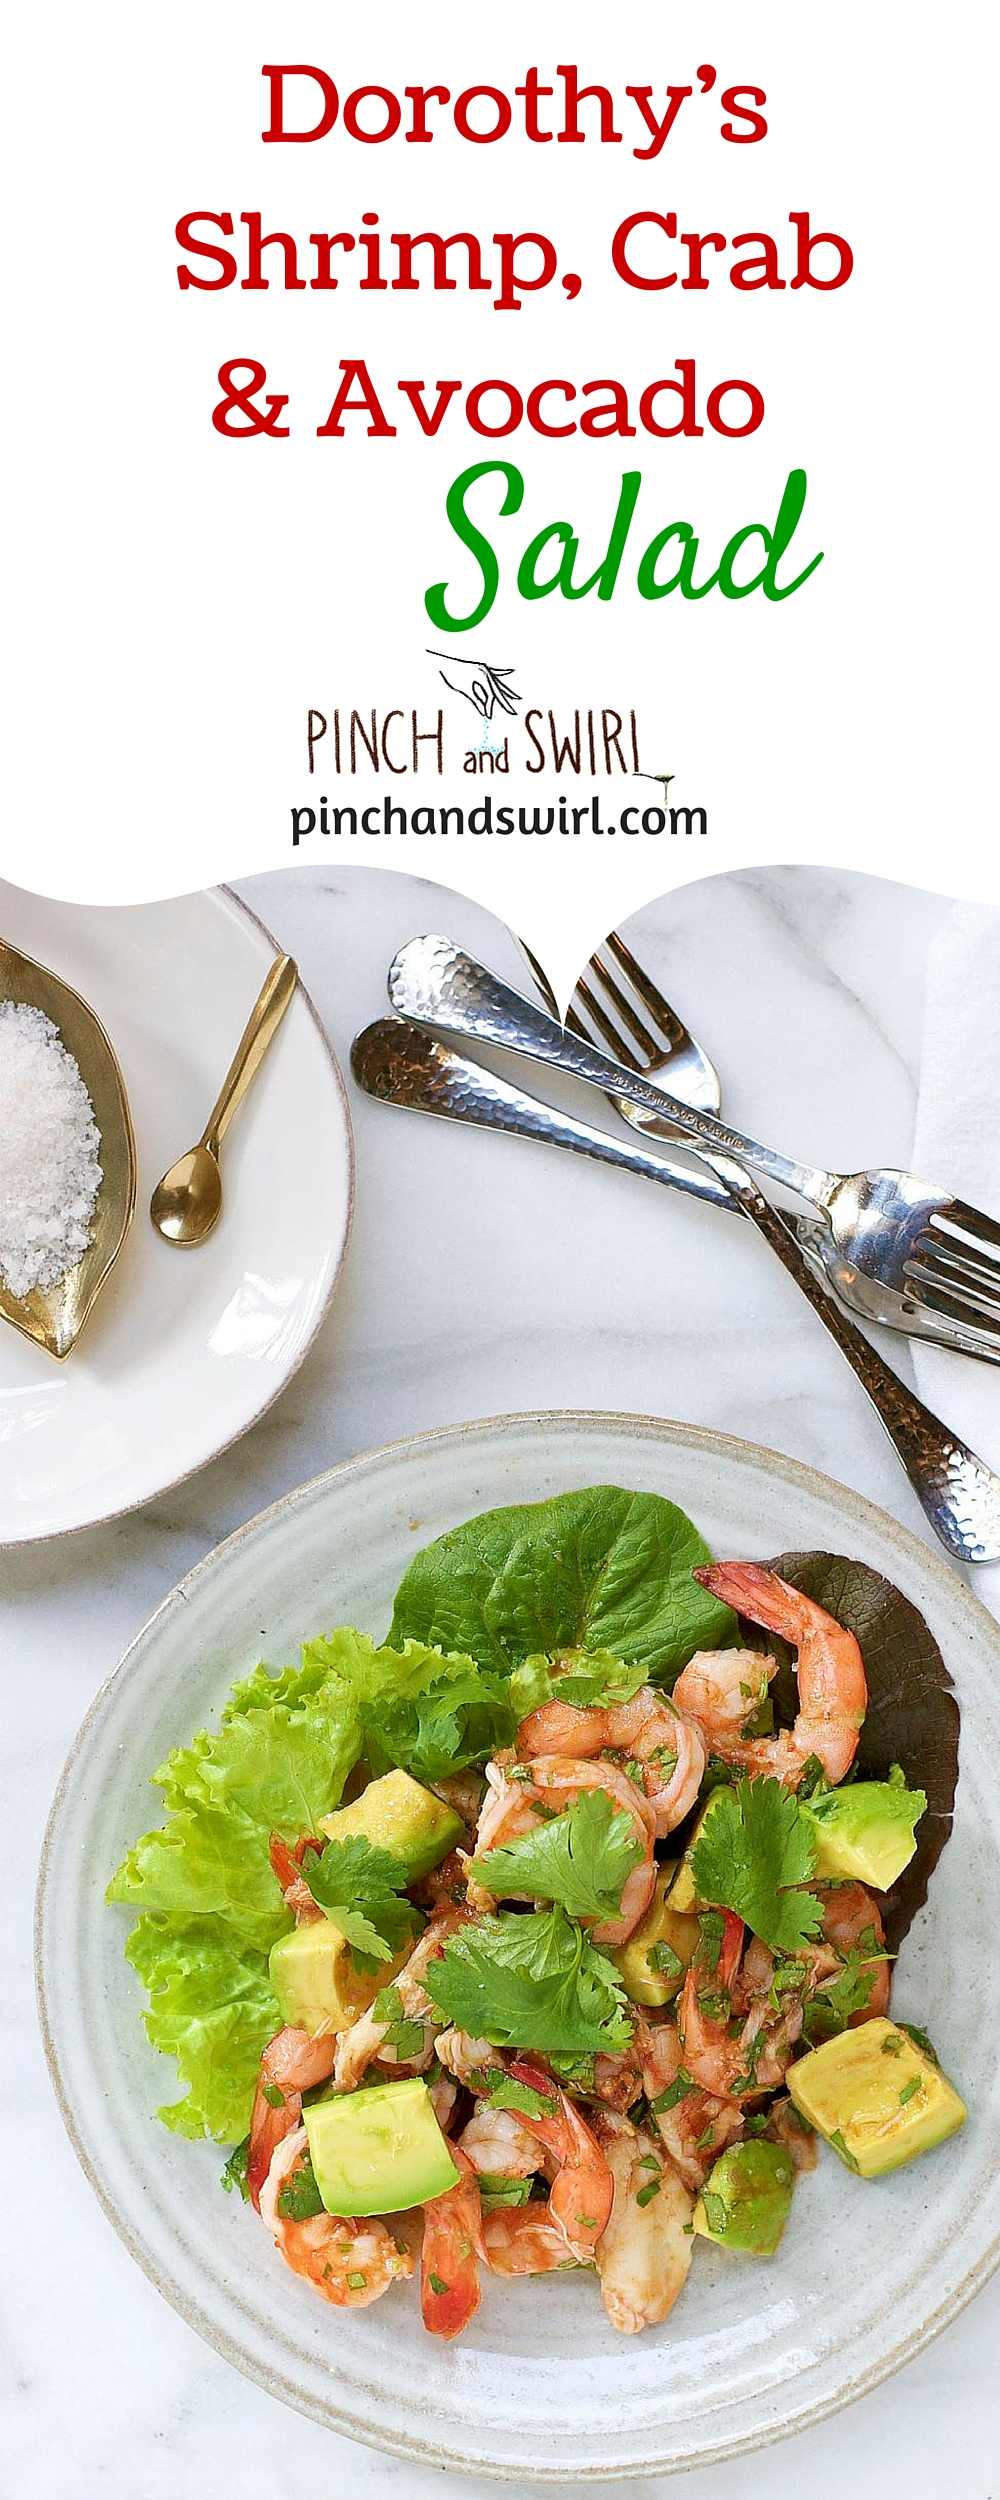 Dorothys Shrimp Crab and Avocado Salad - the perfect partner to everything you'll be grilling this summer! #salad #healthyrecipes #avocado #seafood #shrimp #appetizers